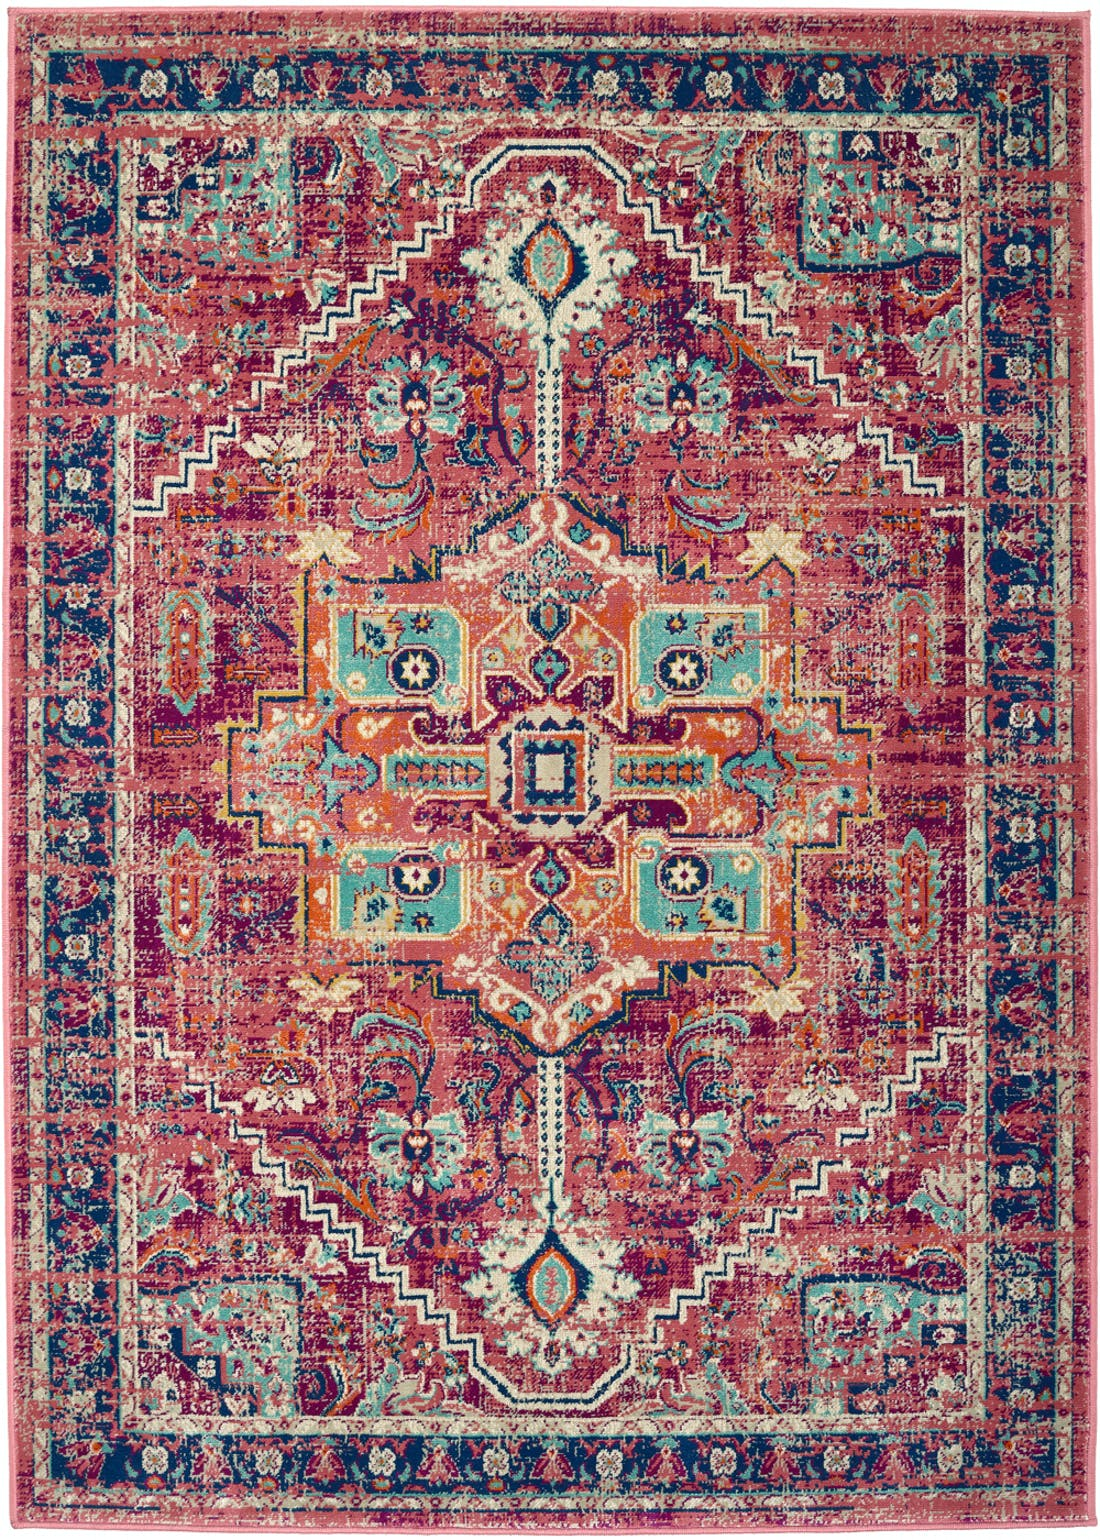 Moroccan Rug (Large)